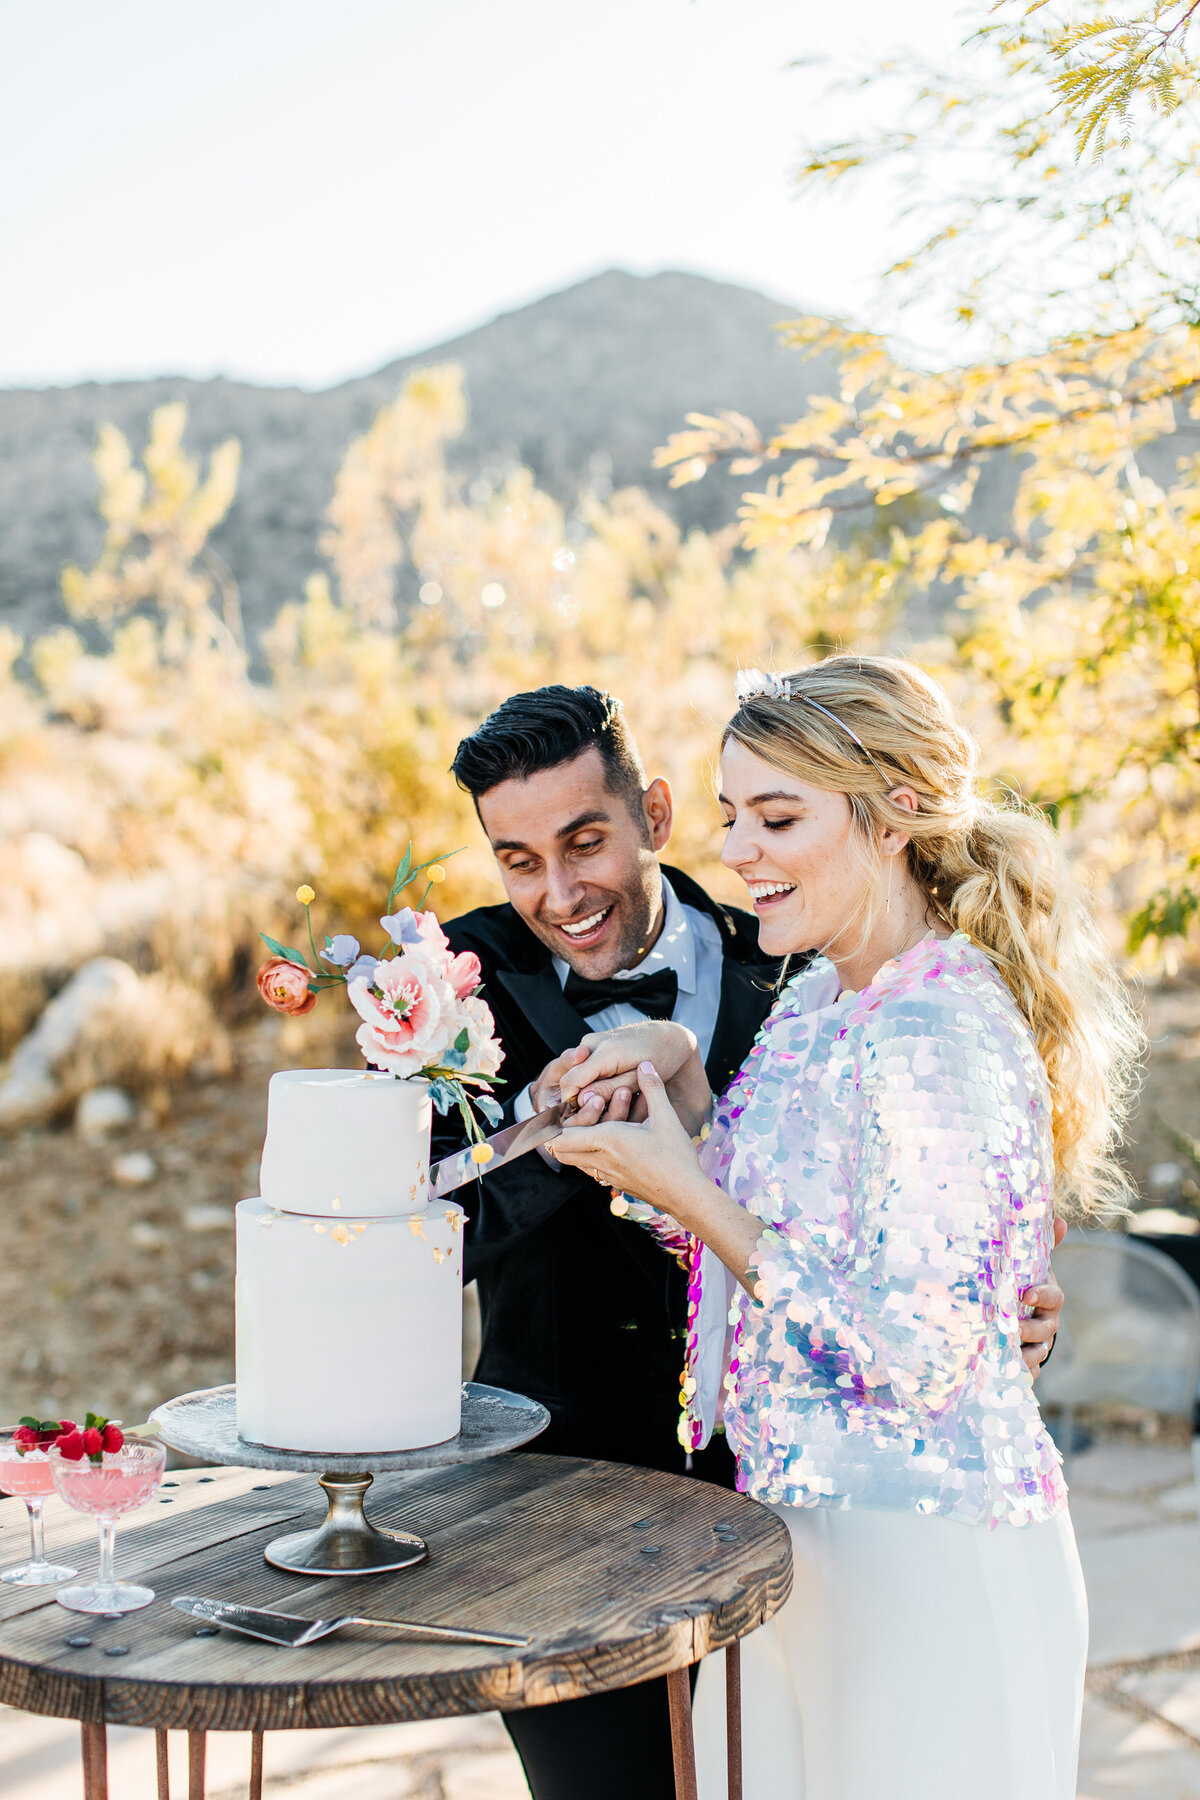 colorful-joshua-tree-elopement-inspiration-joshua-tree-wedding-photographer-palm-springs-wedding-photographer-erin-marton-photography-32